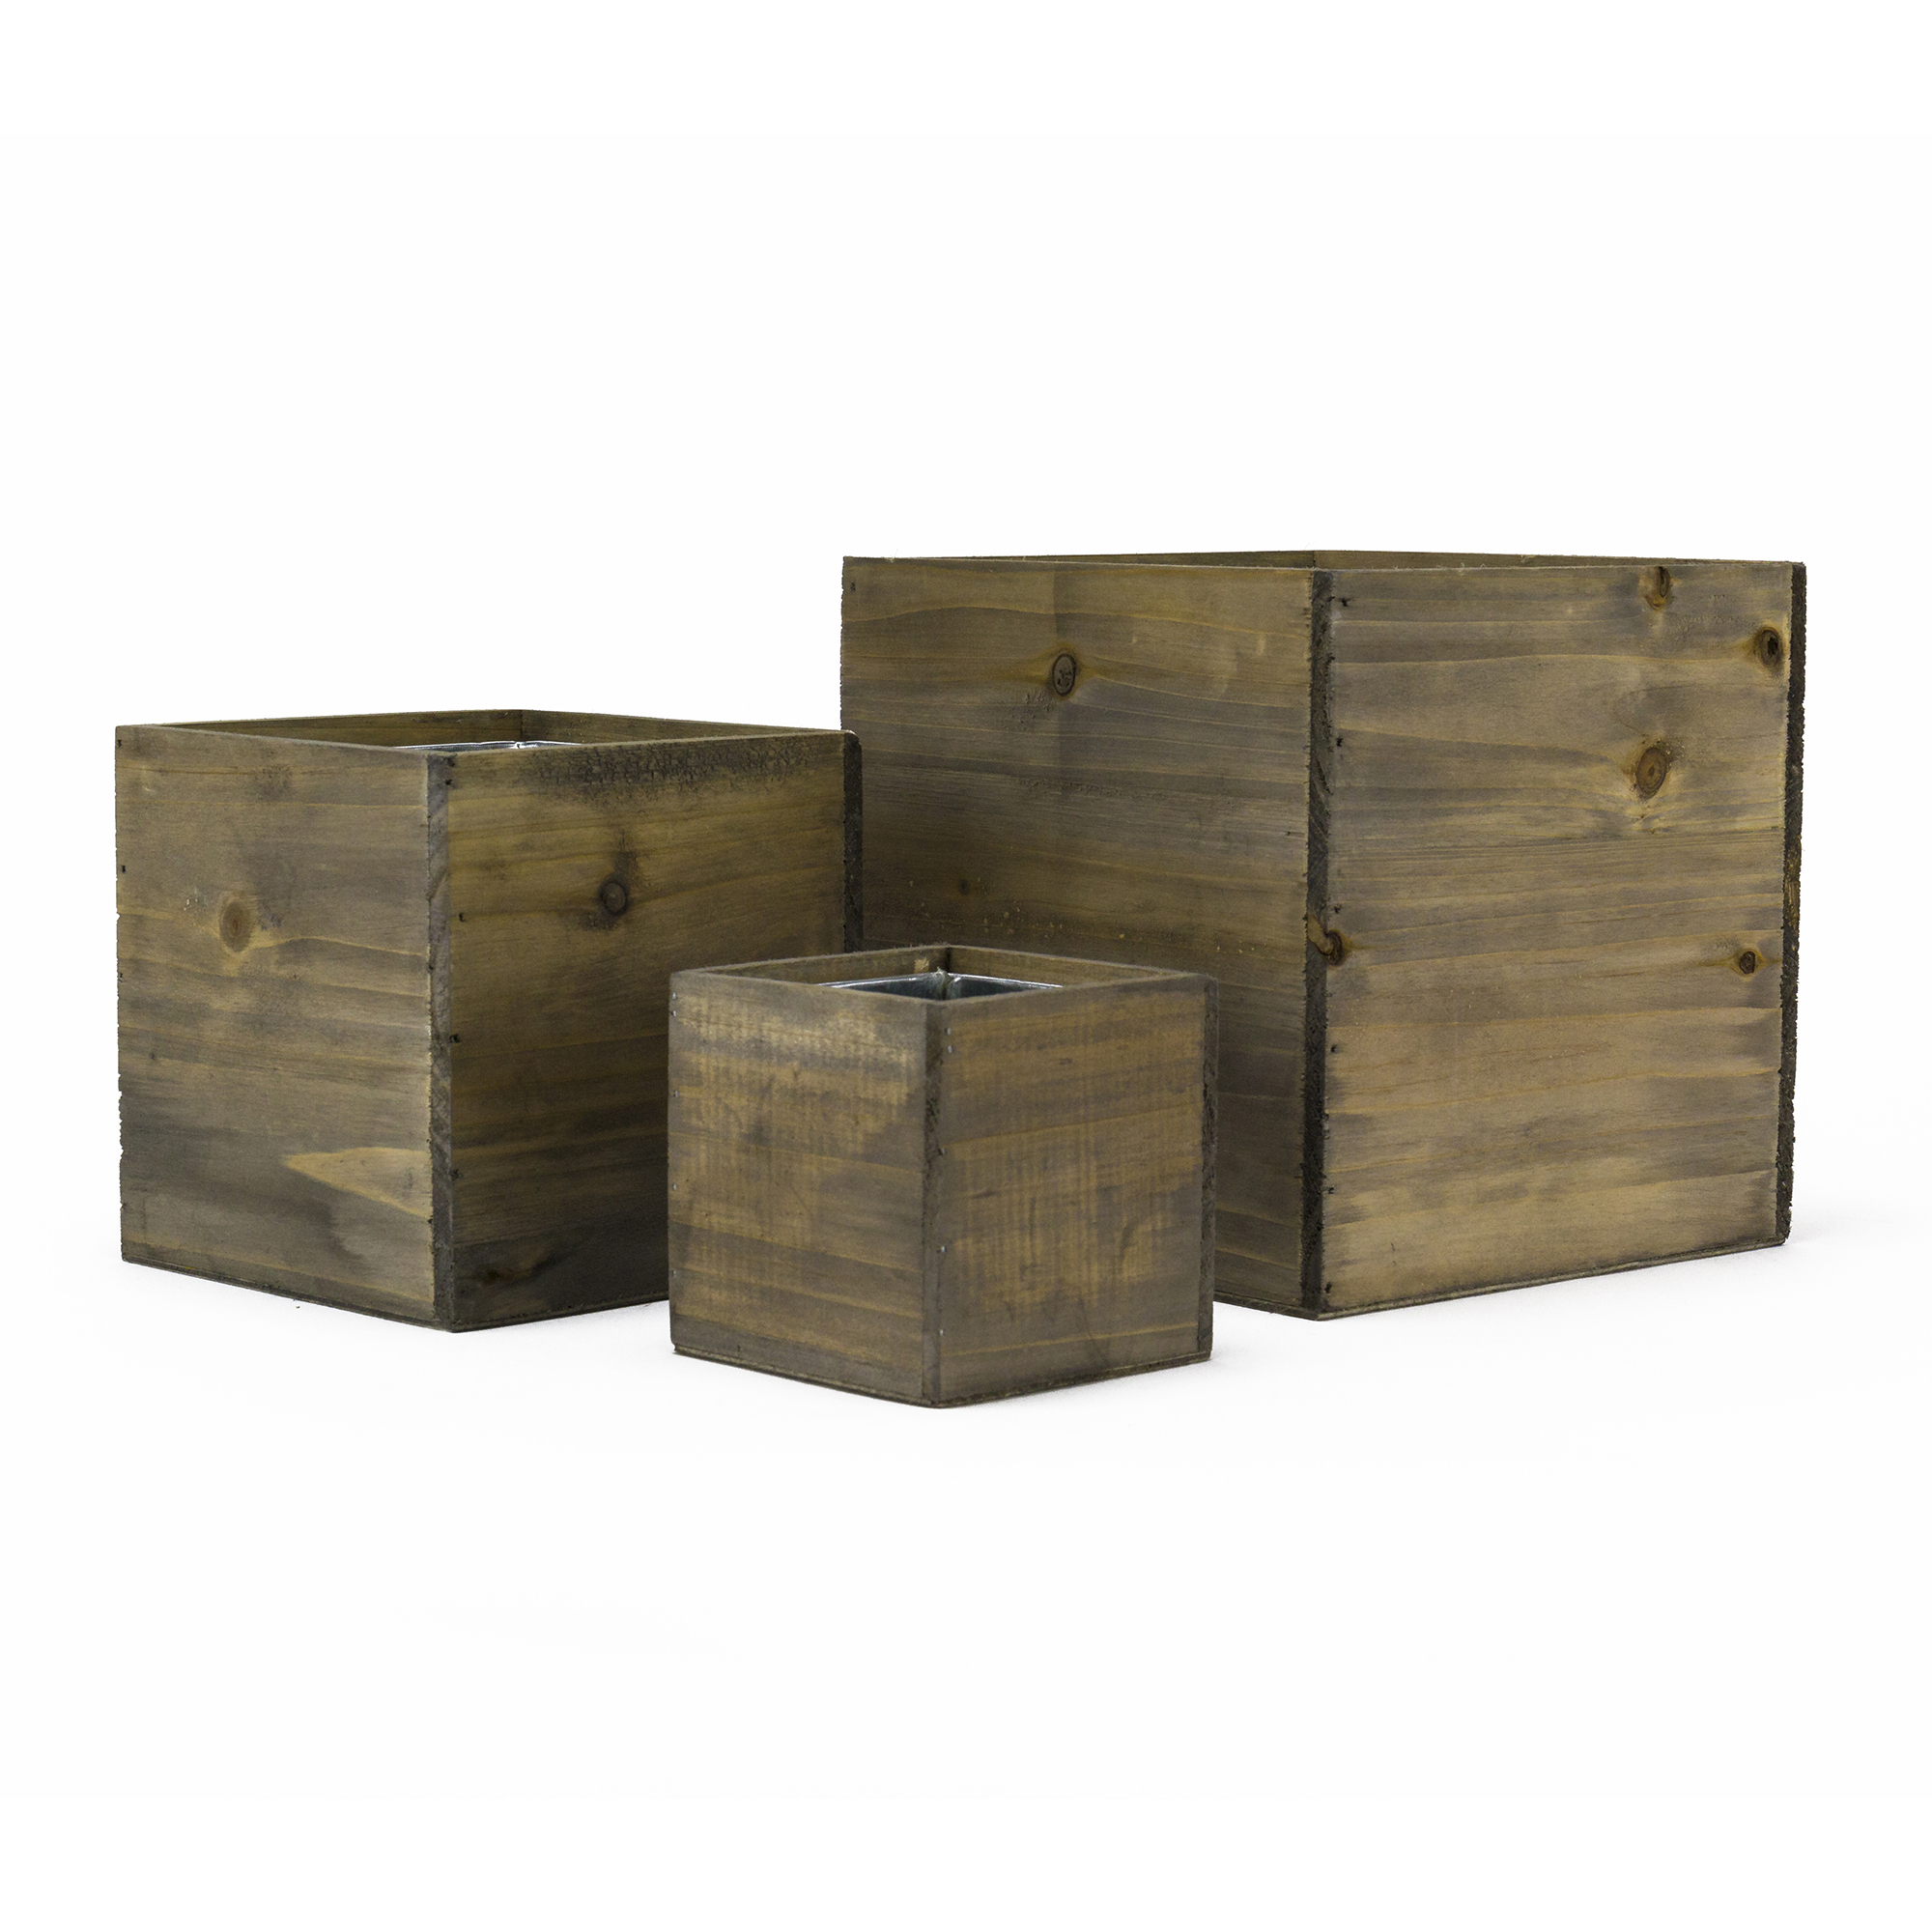 "Wood Planter Cube Boxes with Zinc Liner Set of 3. H-8"", 6"", 4"""